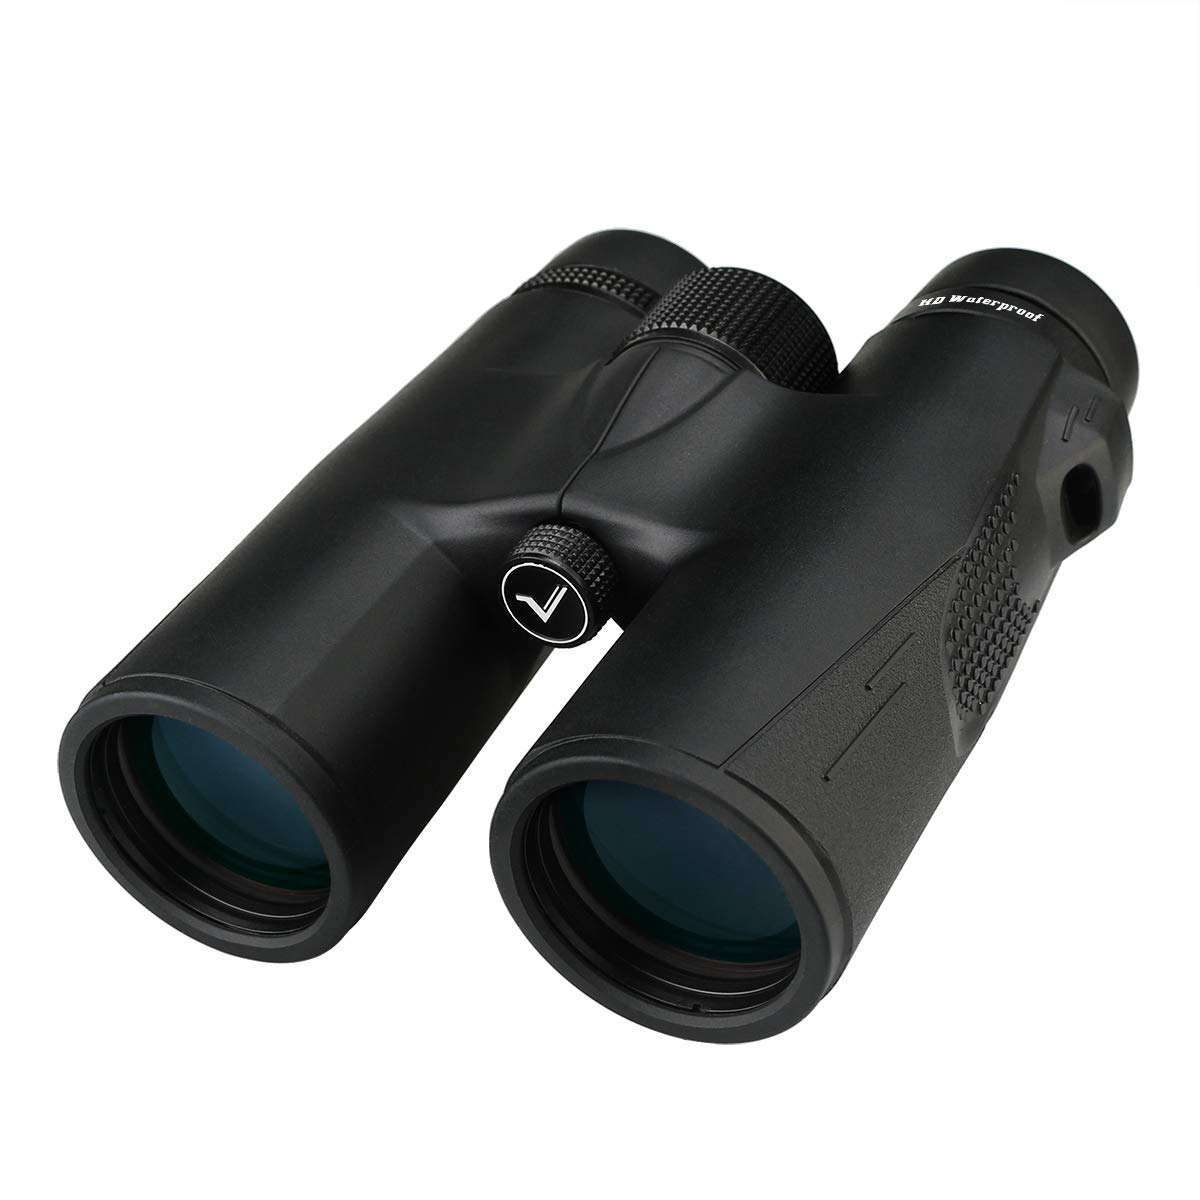 SVBONY SV47 Binoculars for Adults Hunting Gifts Binoculars for Men BAK4 Prism FMC Lens HD Professional Binoculars for Bird Watching Outdoor Sports Games and Concerts (10x42mm, Black)